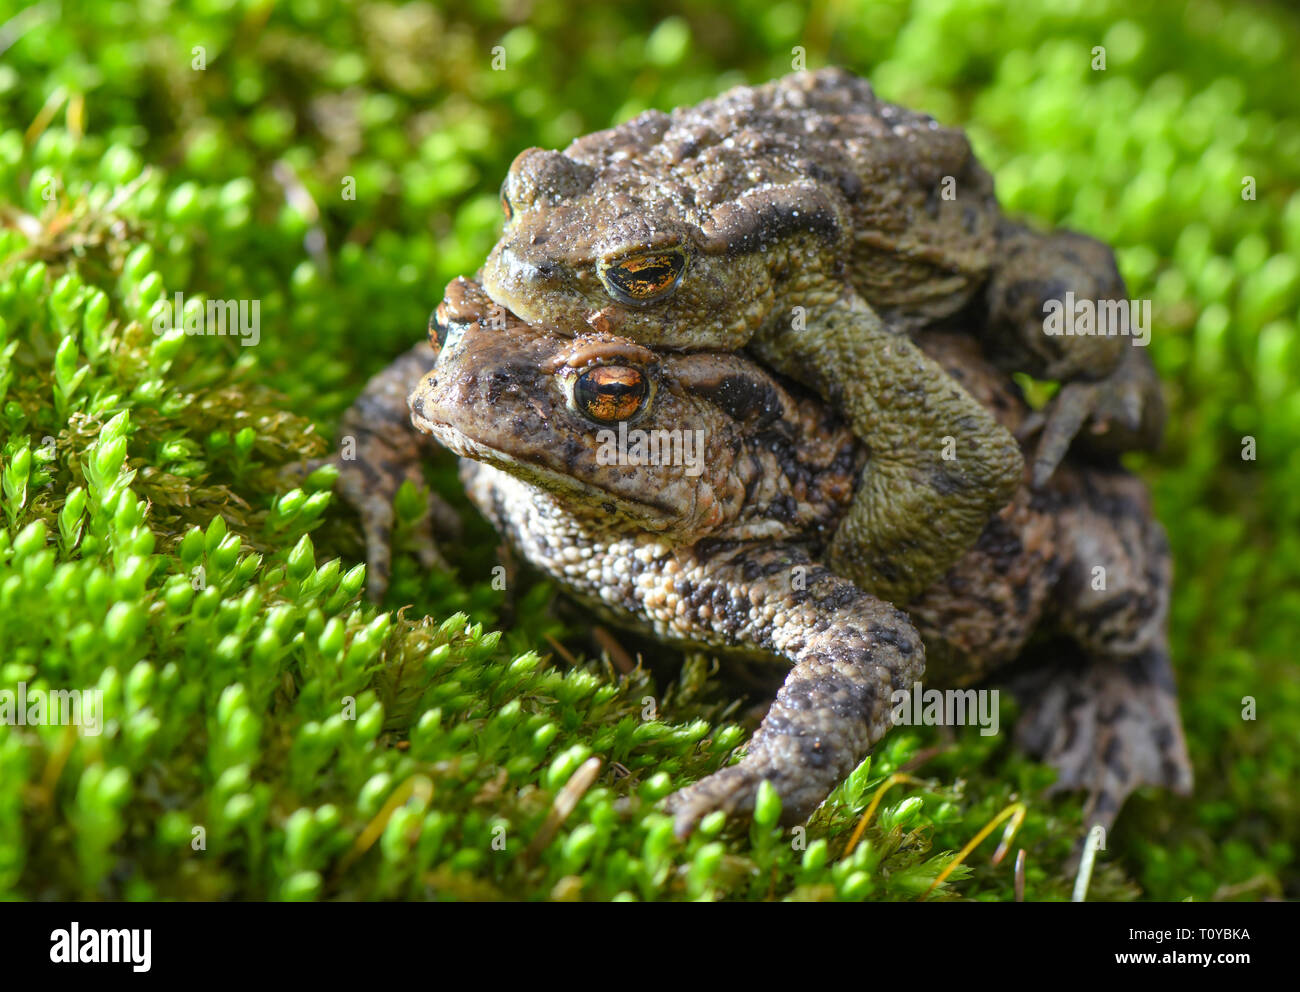 22 March 2019, Brandenburg, Sauen: A pair of earth toads (Bufo bufo) crawls over moss on the edge of a small pond in the forest of the August Beer Foundation. Due to the mild spring weather, the toads' migration to their light waters is in full swing. Photo: Patrick Pleul/dpa-Zentralbild/dpa - Stock Image